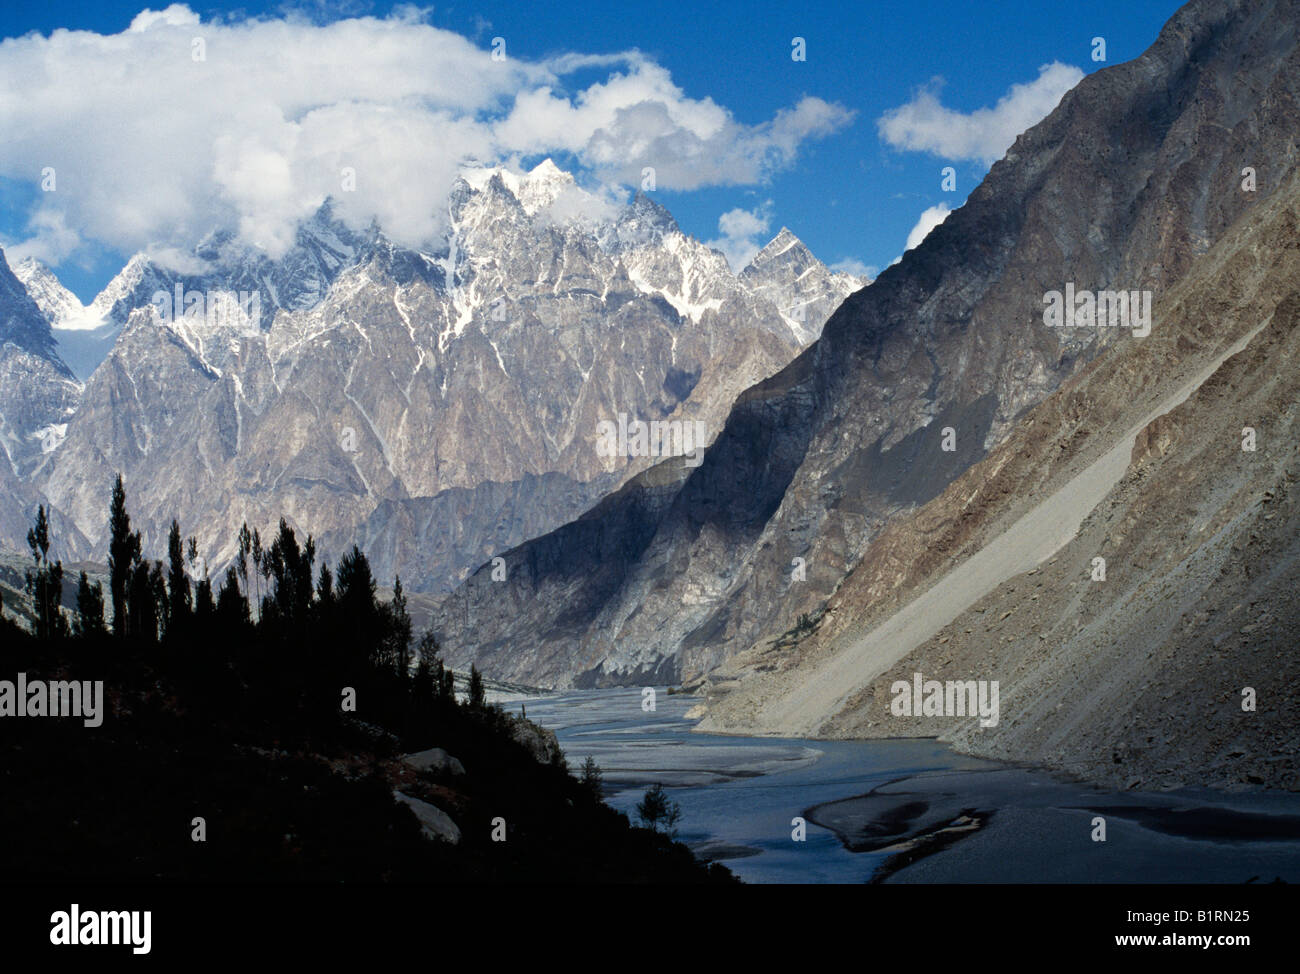 Sust, Hunza River, Karakorum, Northern Territories, Pakistan, Asia - Stock Image